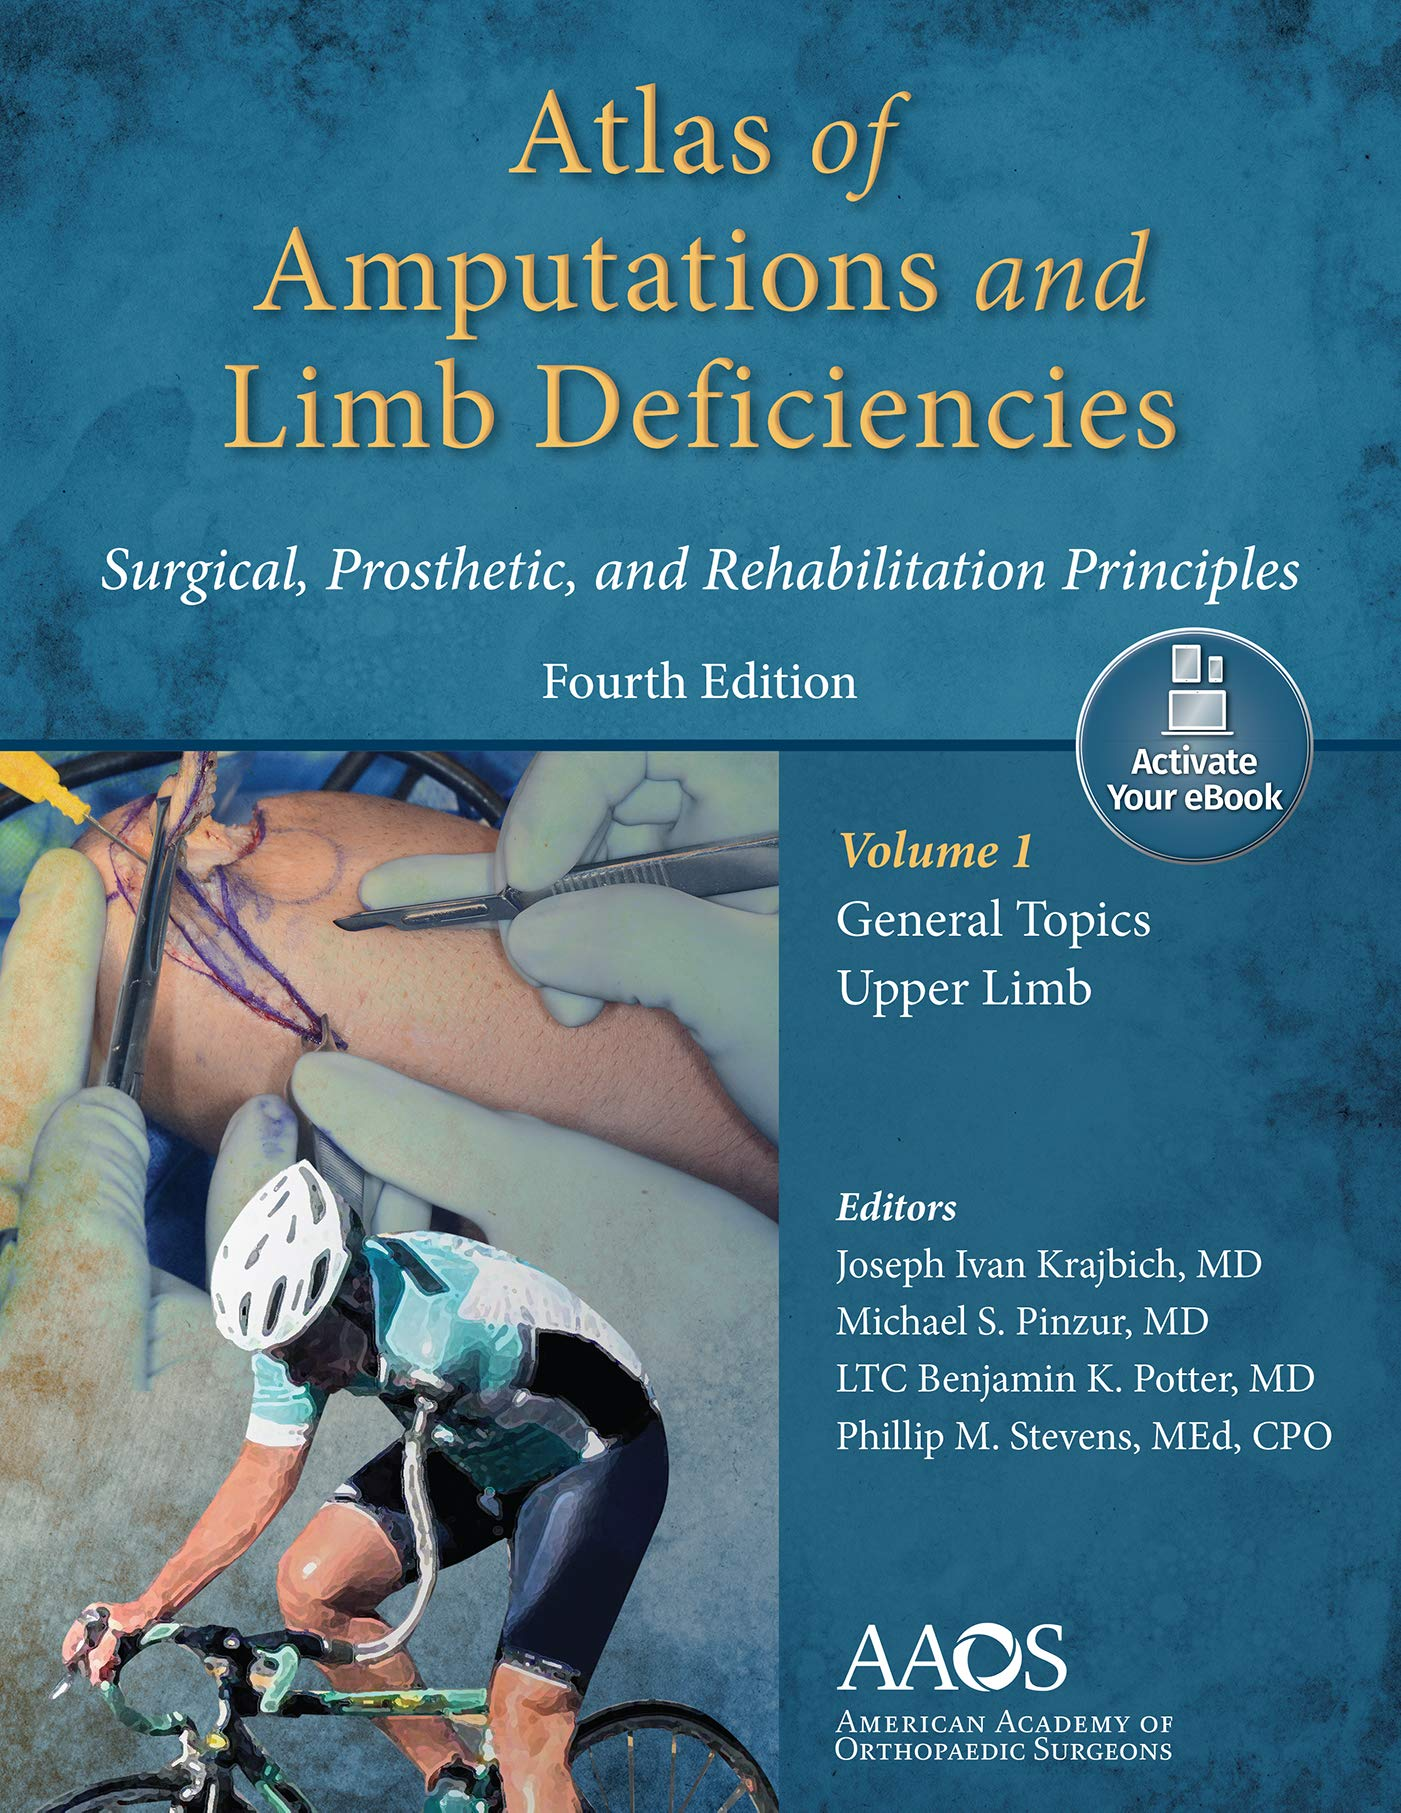 Atlas of Amputations & Limb Deficiencies: Amazon.es: Krajbich ...